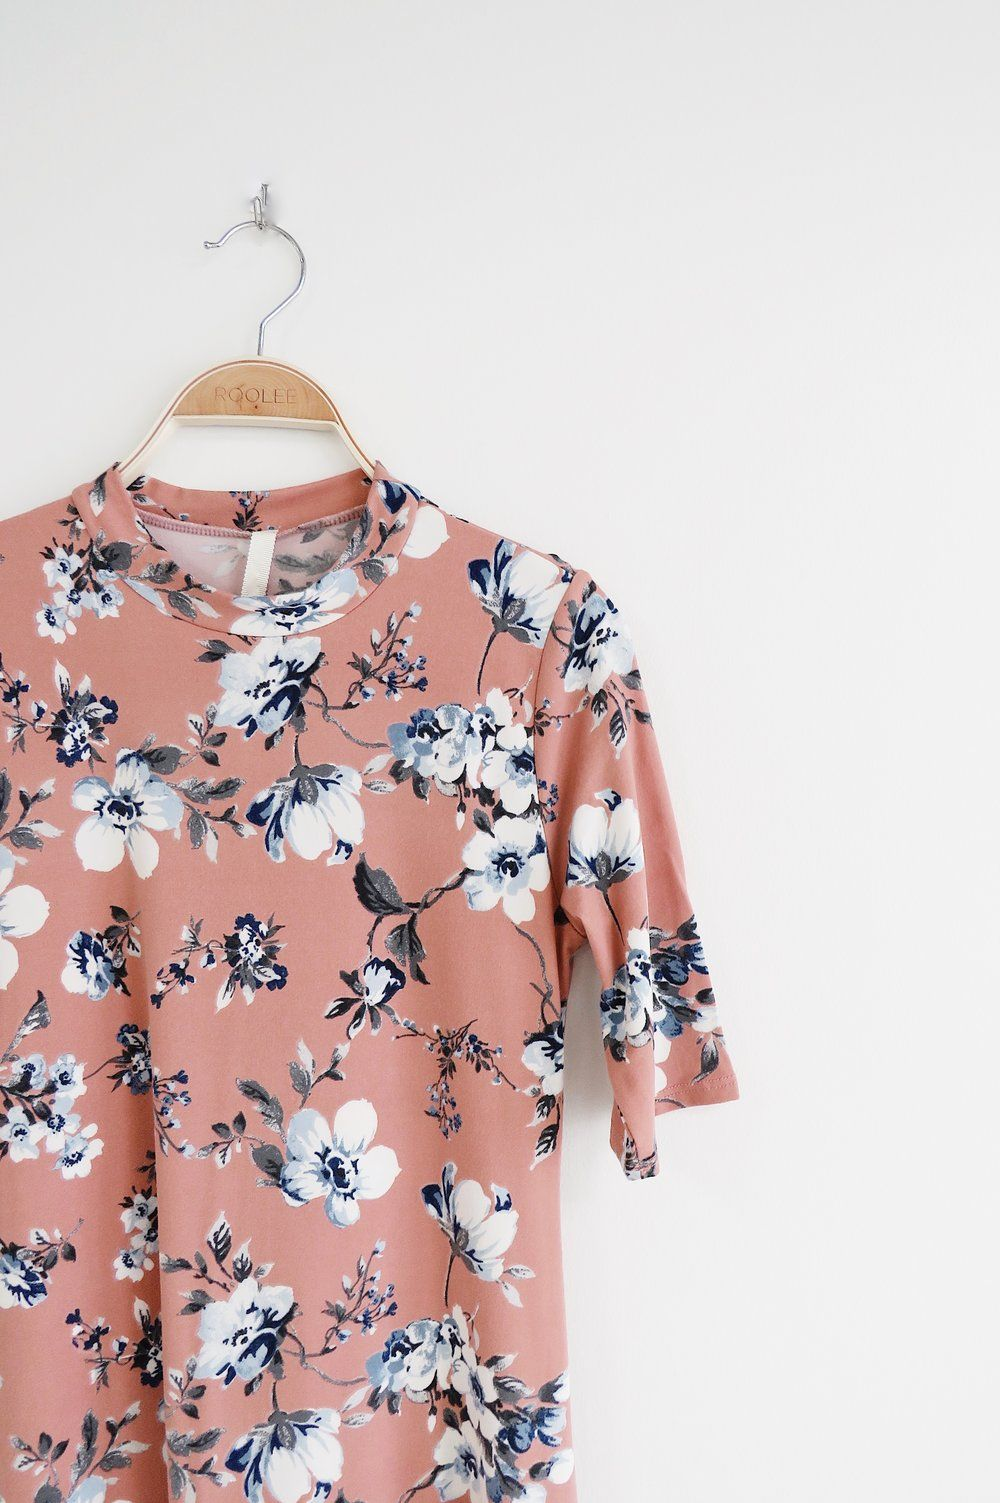 pinterest: rooleeboutique | Style Clothes • | Pinterest | Blusas ...